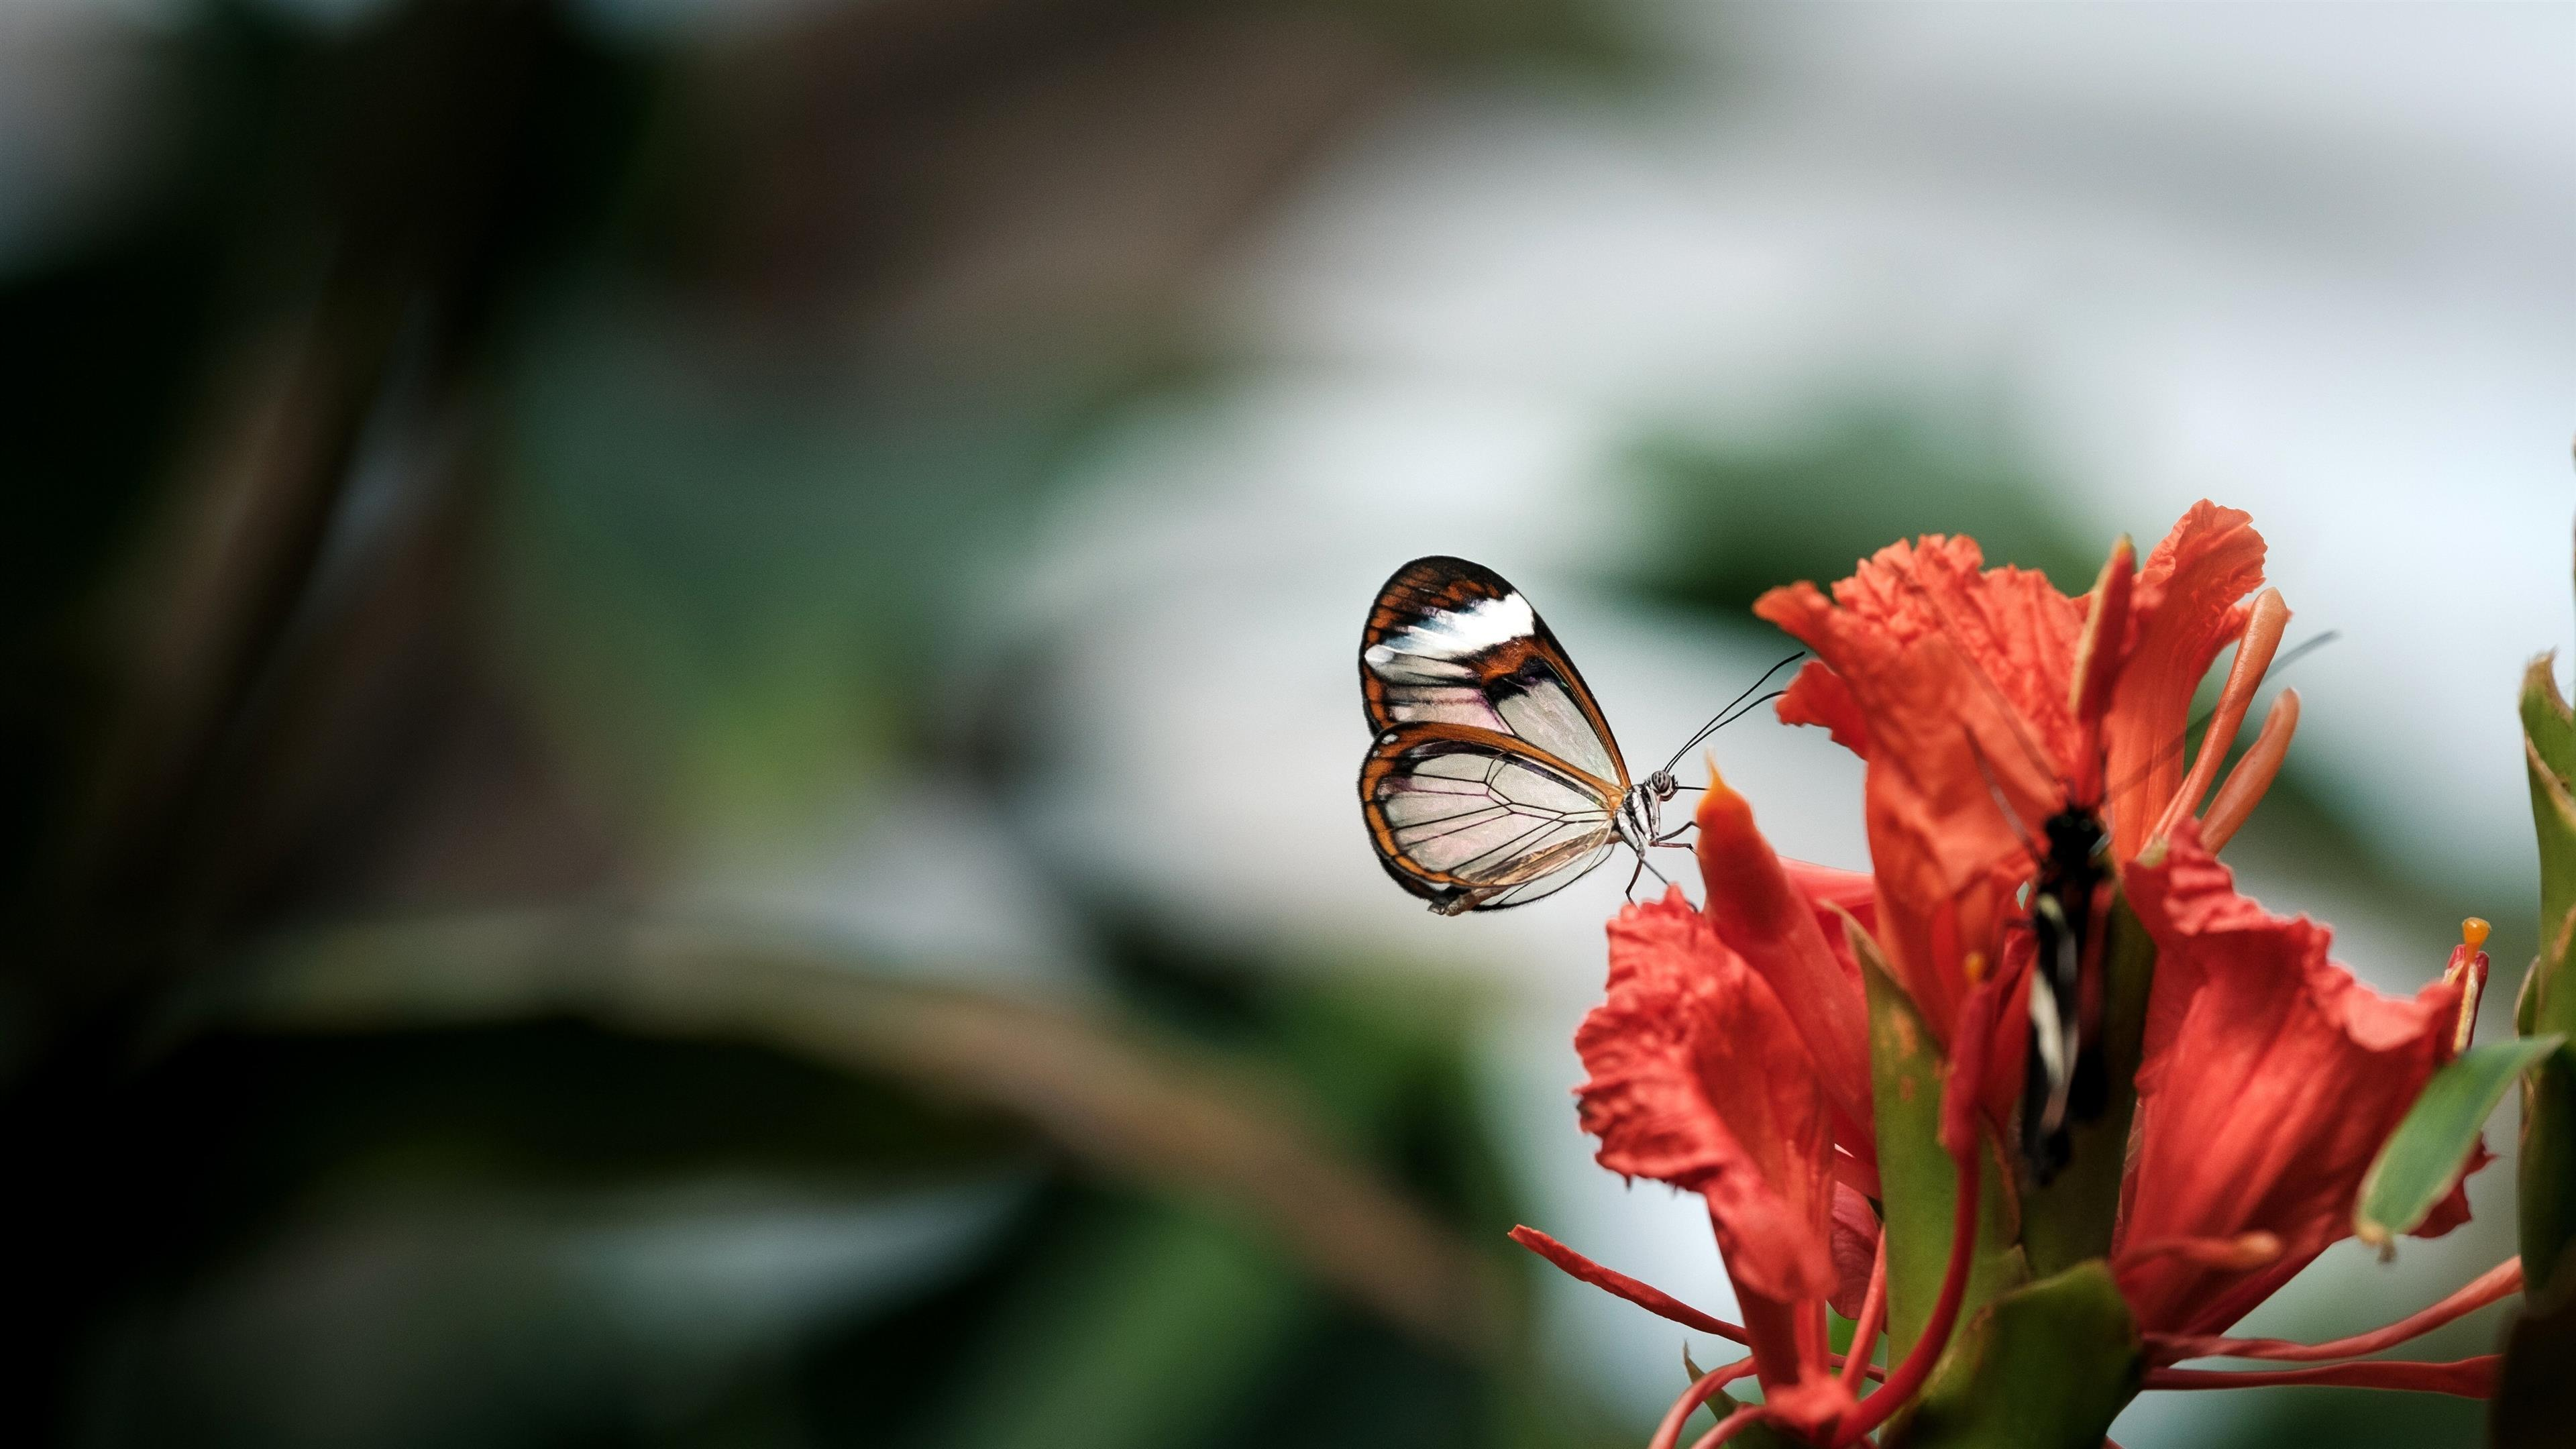 3840x2160 Cute Child Butterfly on Red Flower 5K Wallpaper